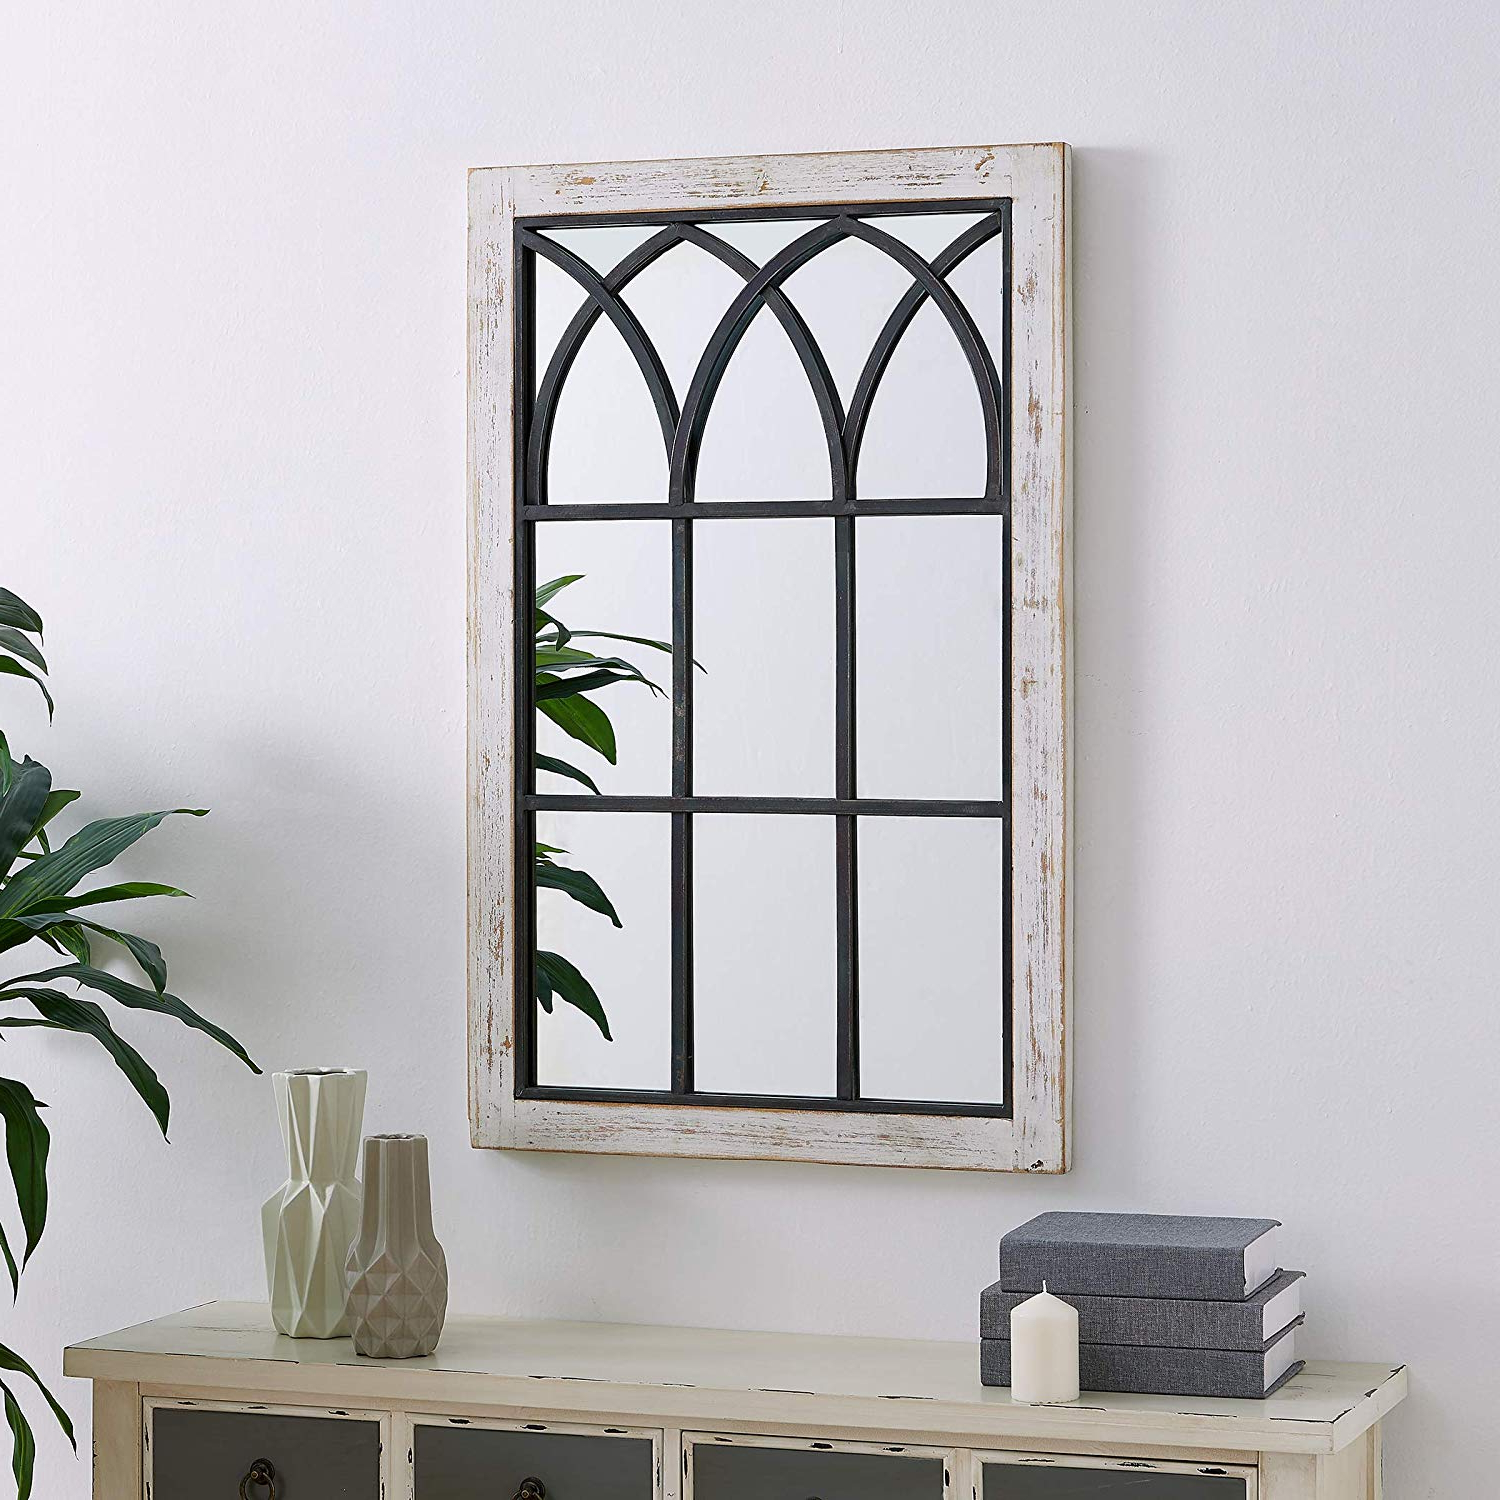 "Well Liked Firstime & Co. 70024 Vista Arched Window Accent Wall Mirror, 37.5"" X 24"", Distressed White Pertaining To Arch Top Vertical Wall Mirrors (Gallery 6 of 20)"